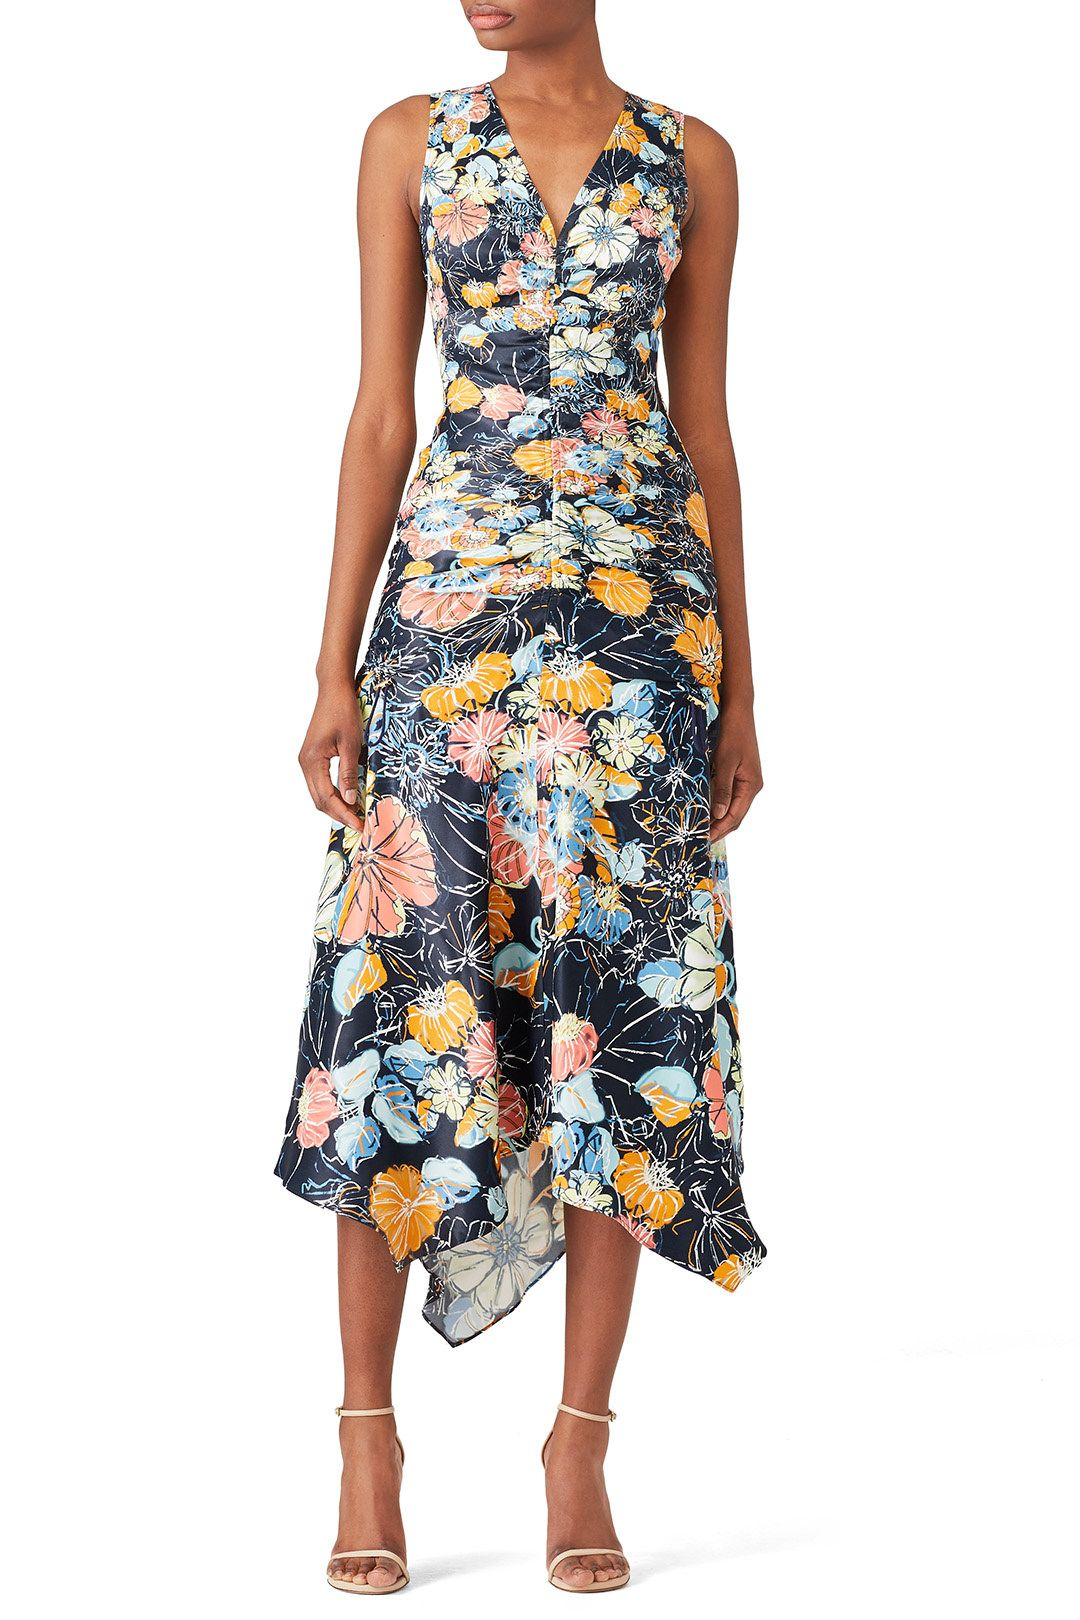 Peter Pilotto Ruched Navy Floral Dress Navy Floral Dress Dresses Floral Dress